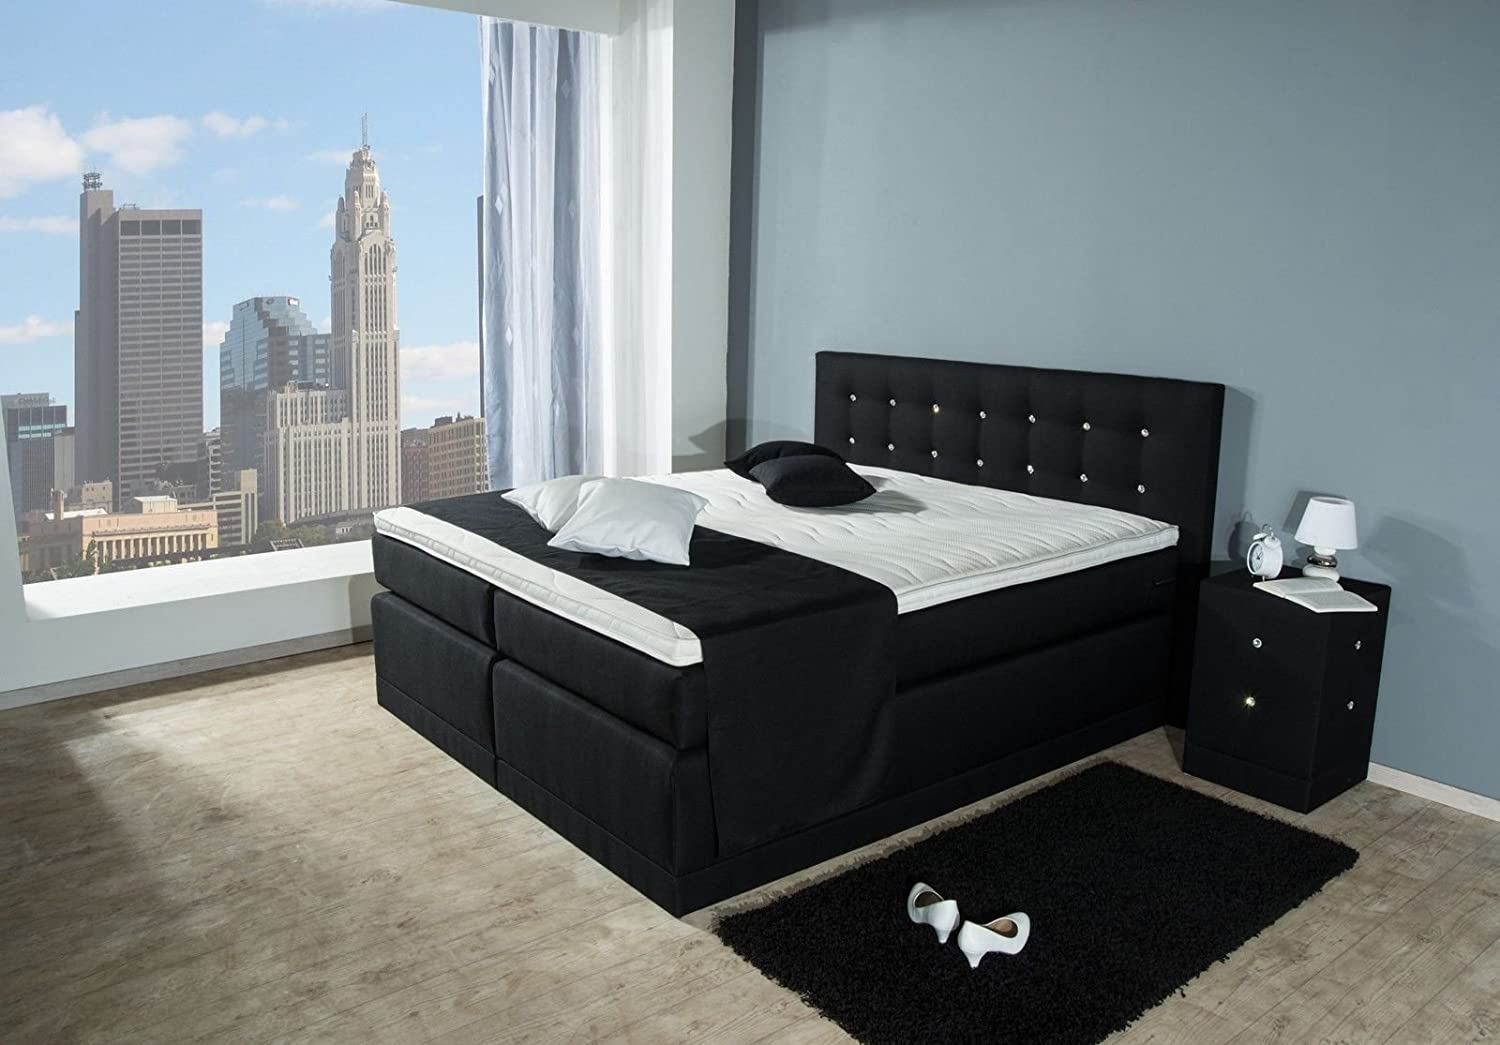 beste wahl boxspringbett 180x200 beste wahl boxspringbetten. Black Bedroom Furniture Sets. Home Design Ideas